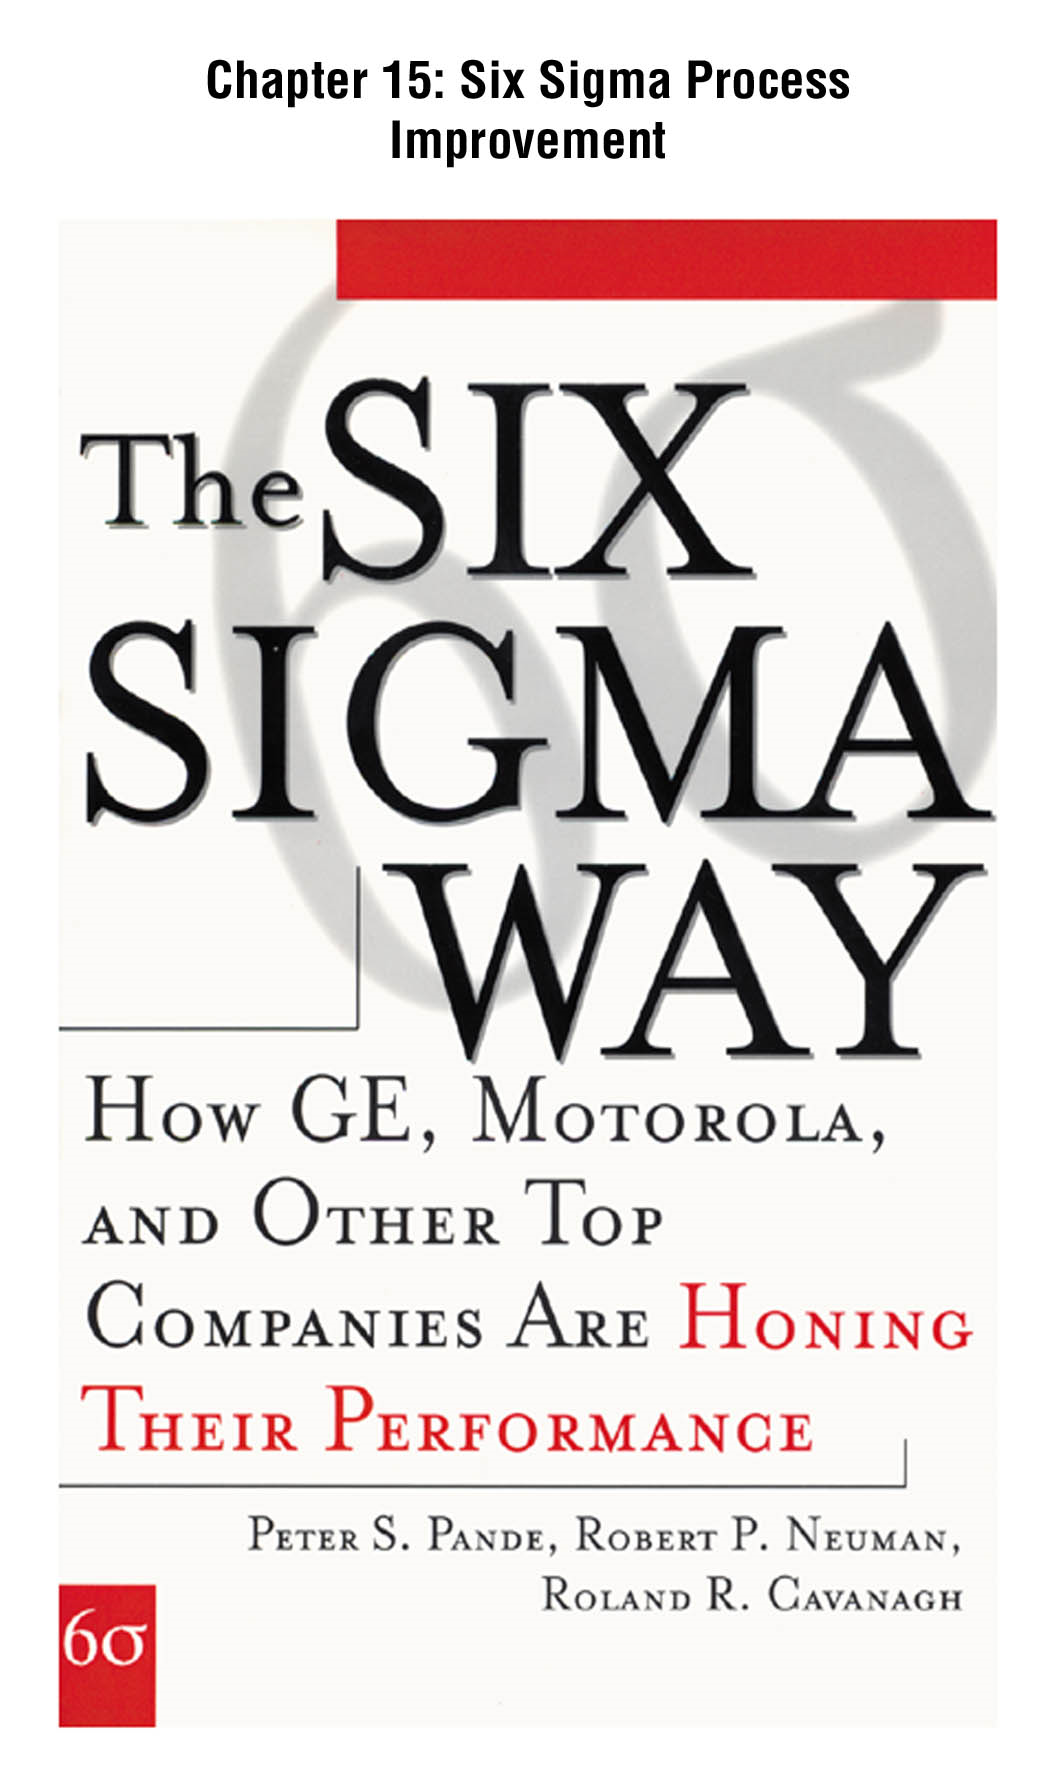 The Six Sigma Way, Chapter 15 - Six Sigma Process Improvement